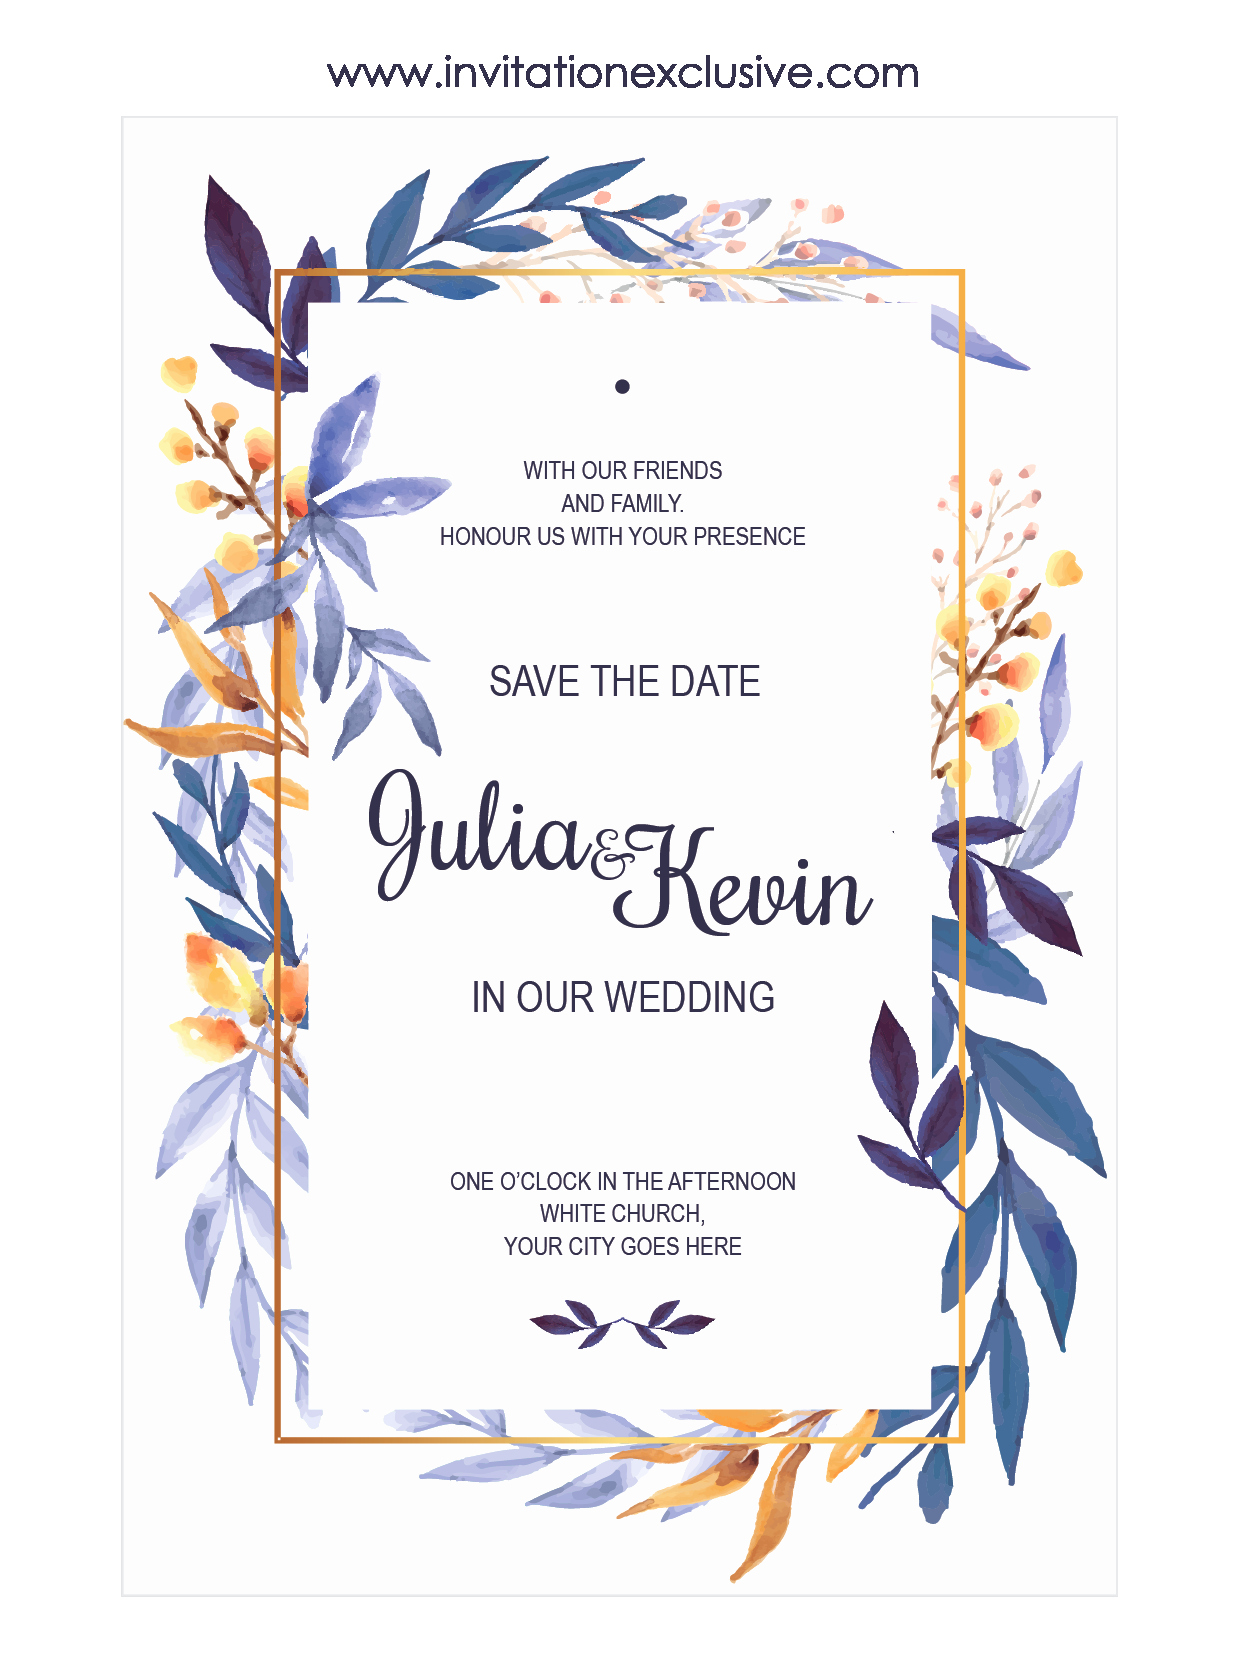 Wedding Invitation Frame Ideas Unique Awesome Leaf Frame Wedding Invitation Designs